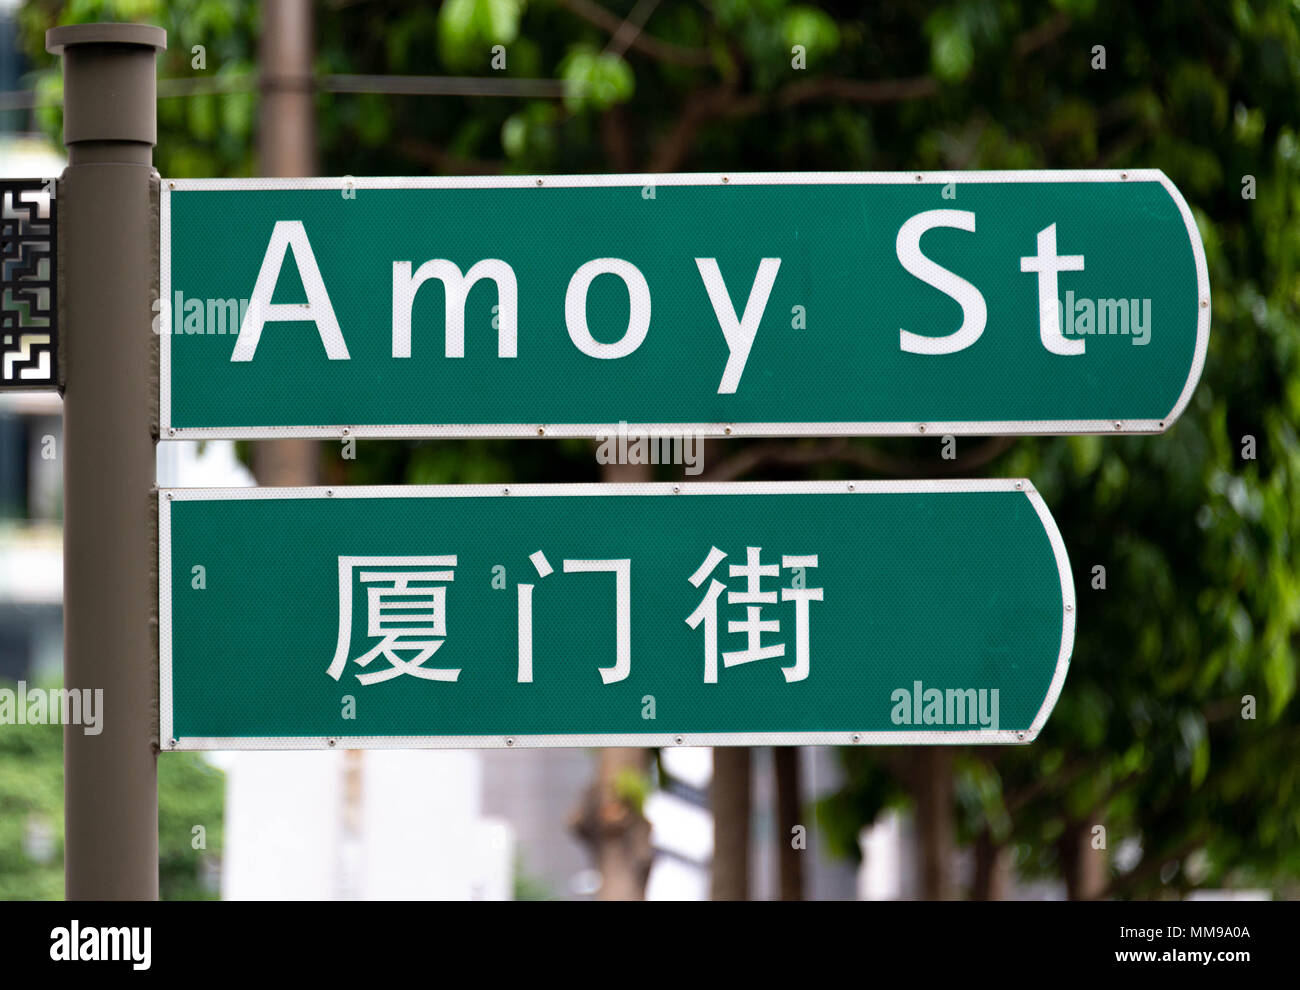 Sign for Amoy Street in downtown Singapore - Stock Image